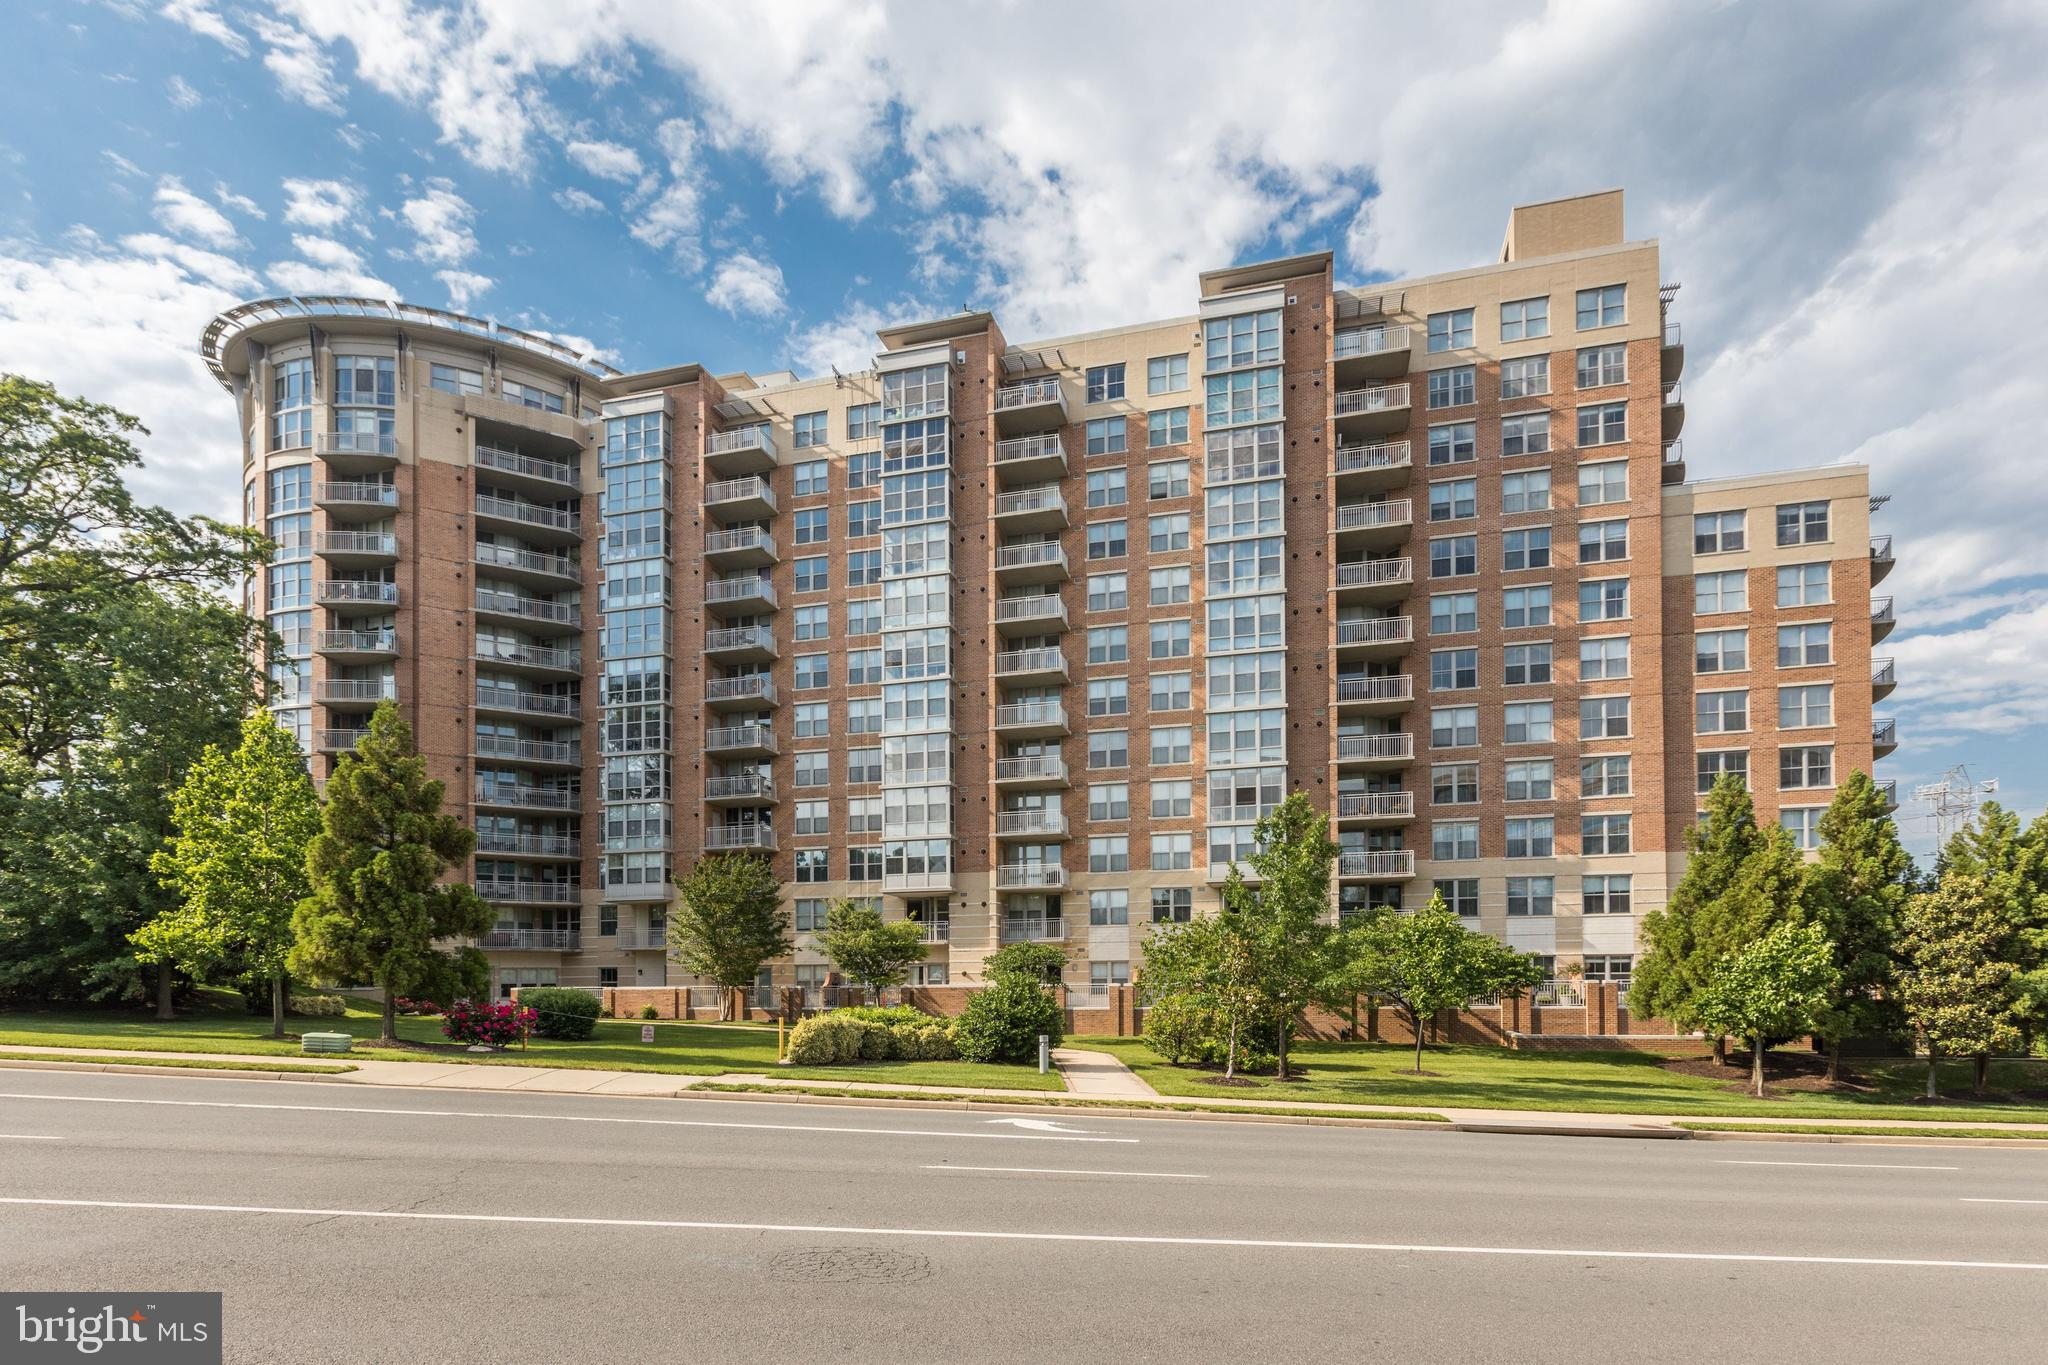 Exquisitely styled, this opportunity offers a very rare tower unit across from Reston Town Center. T